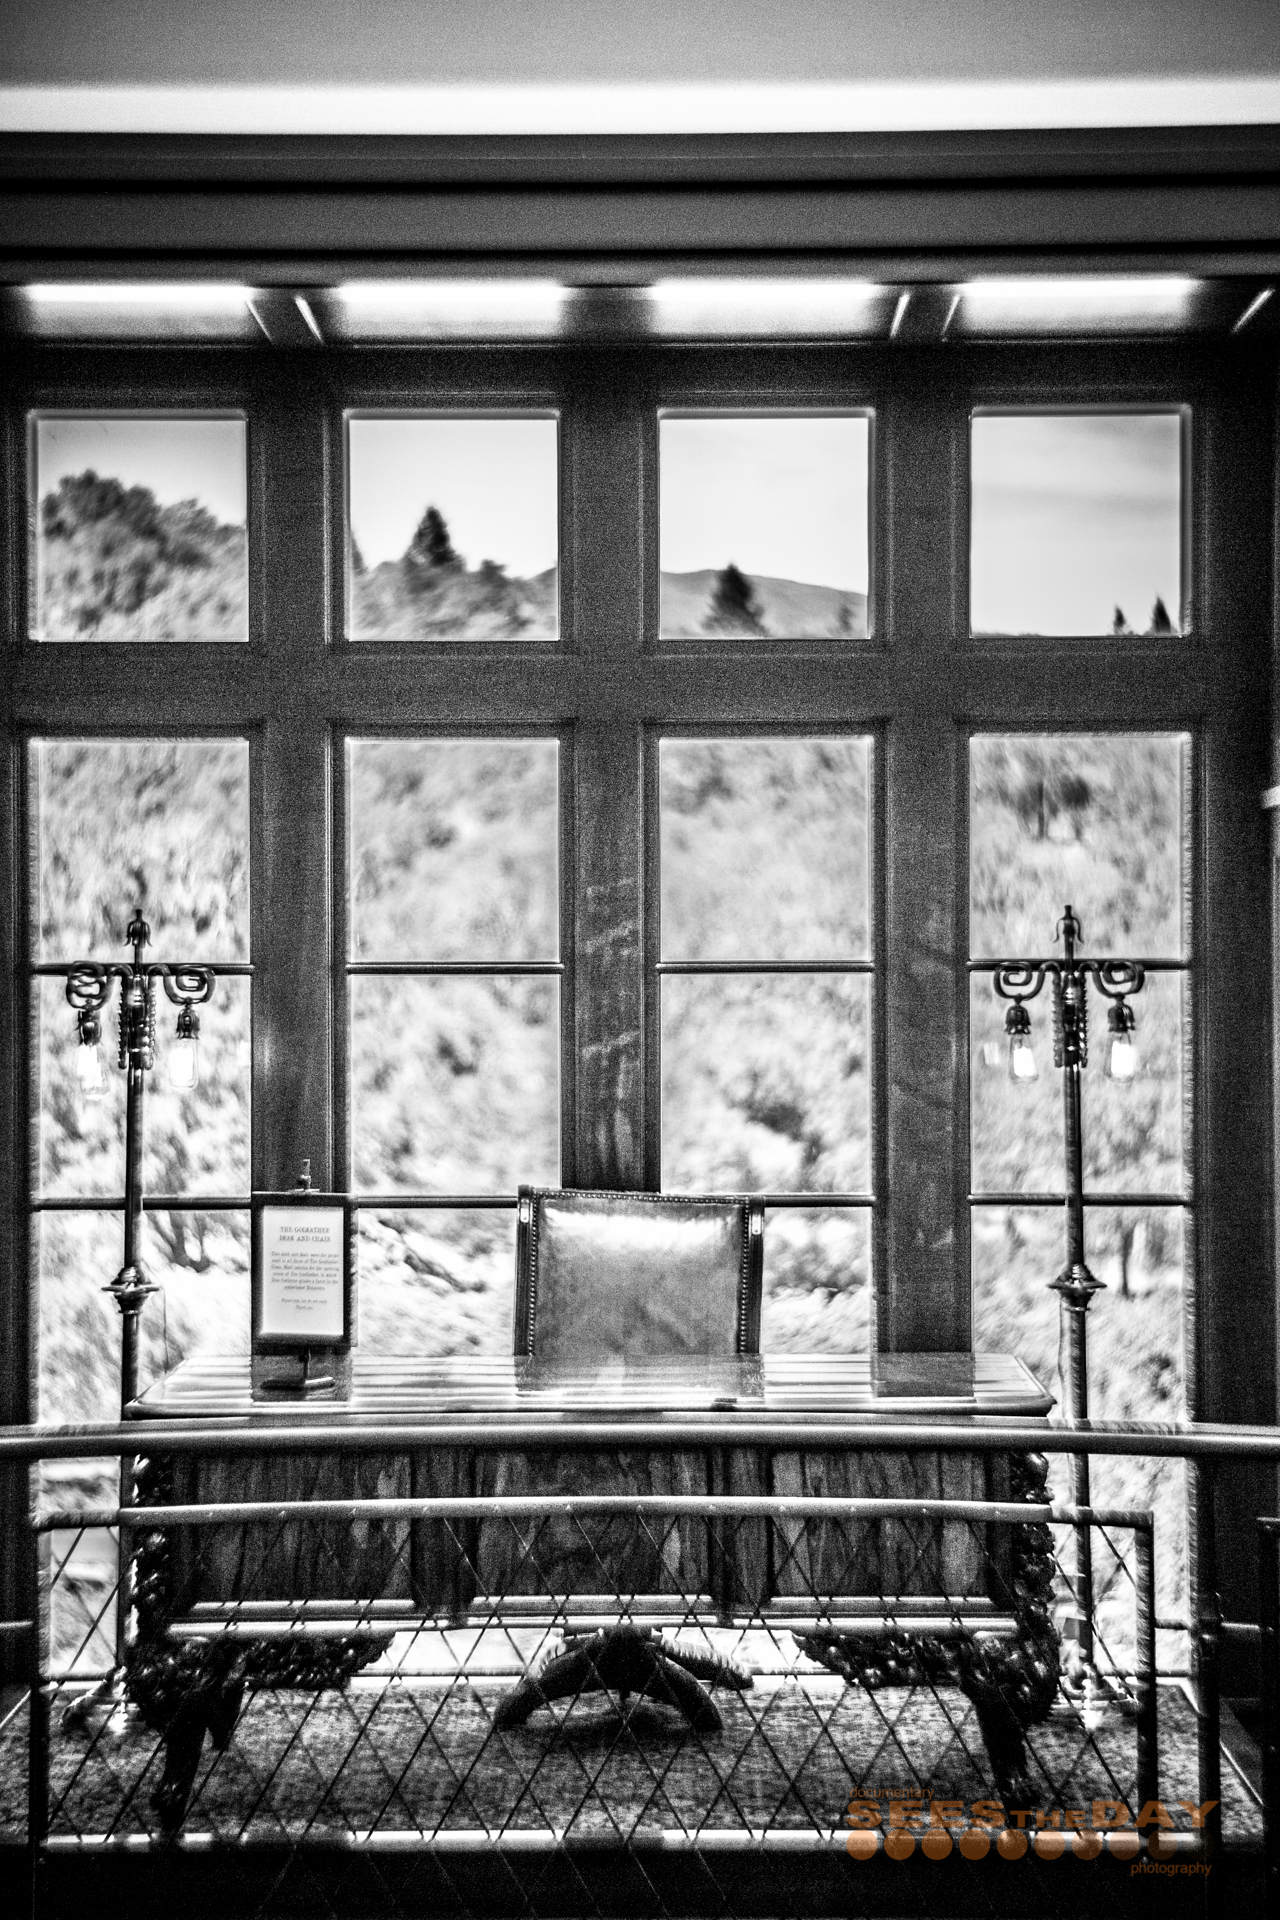 Francis_Ford_Coppola_Winery_Geyserville_Napa_009.jpg